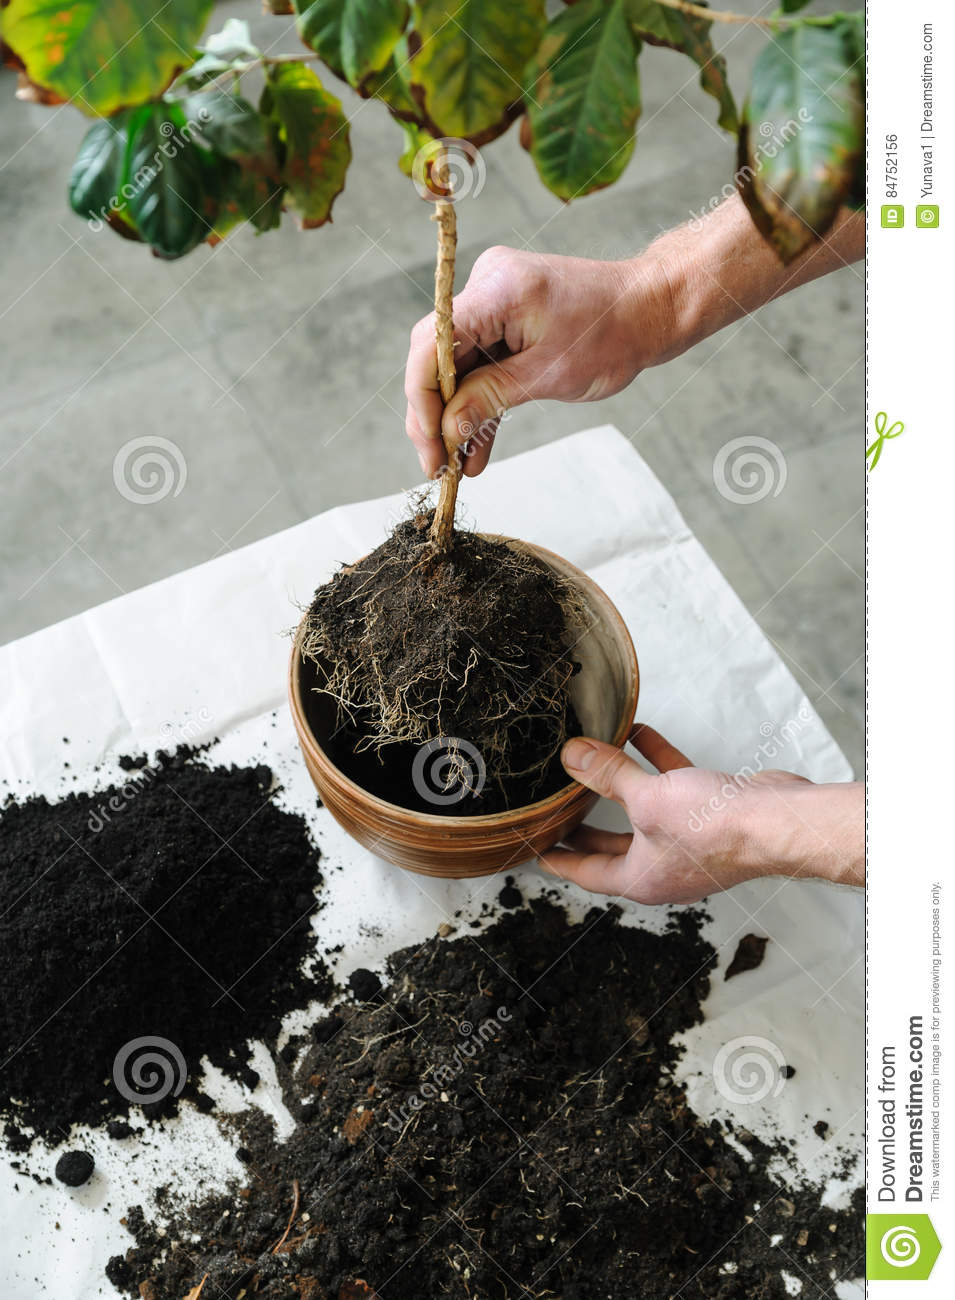 Replanting av houseplanten